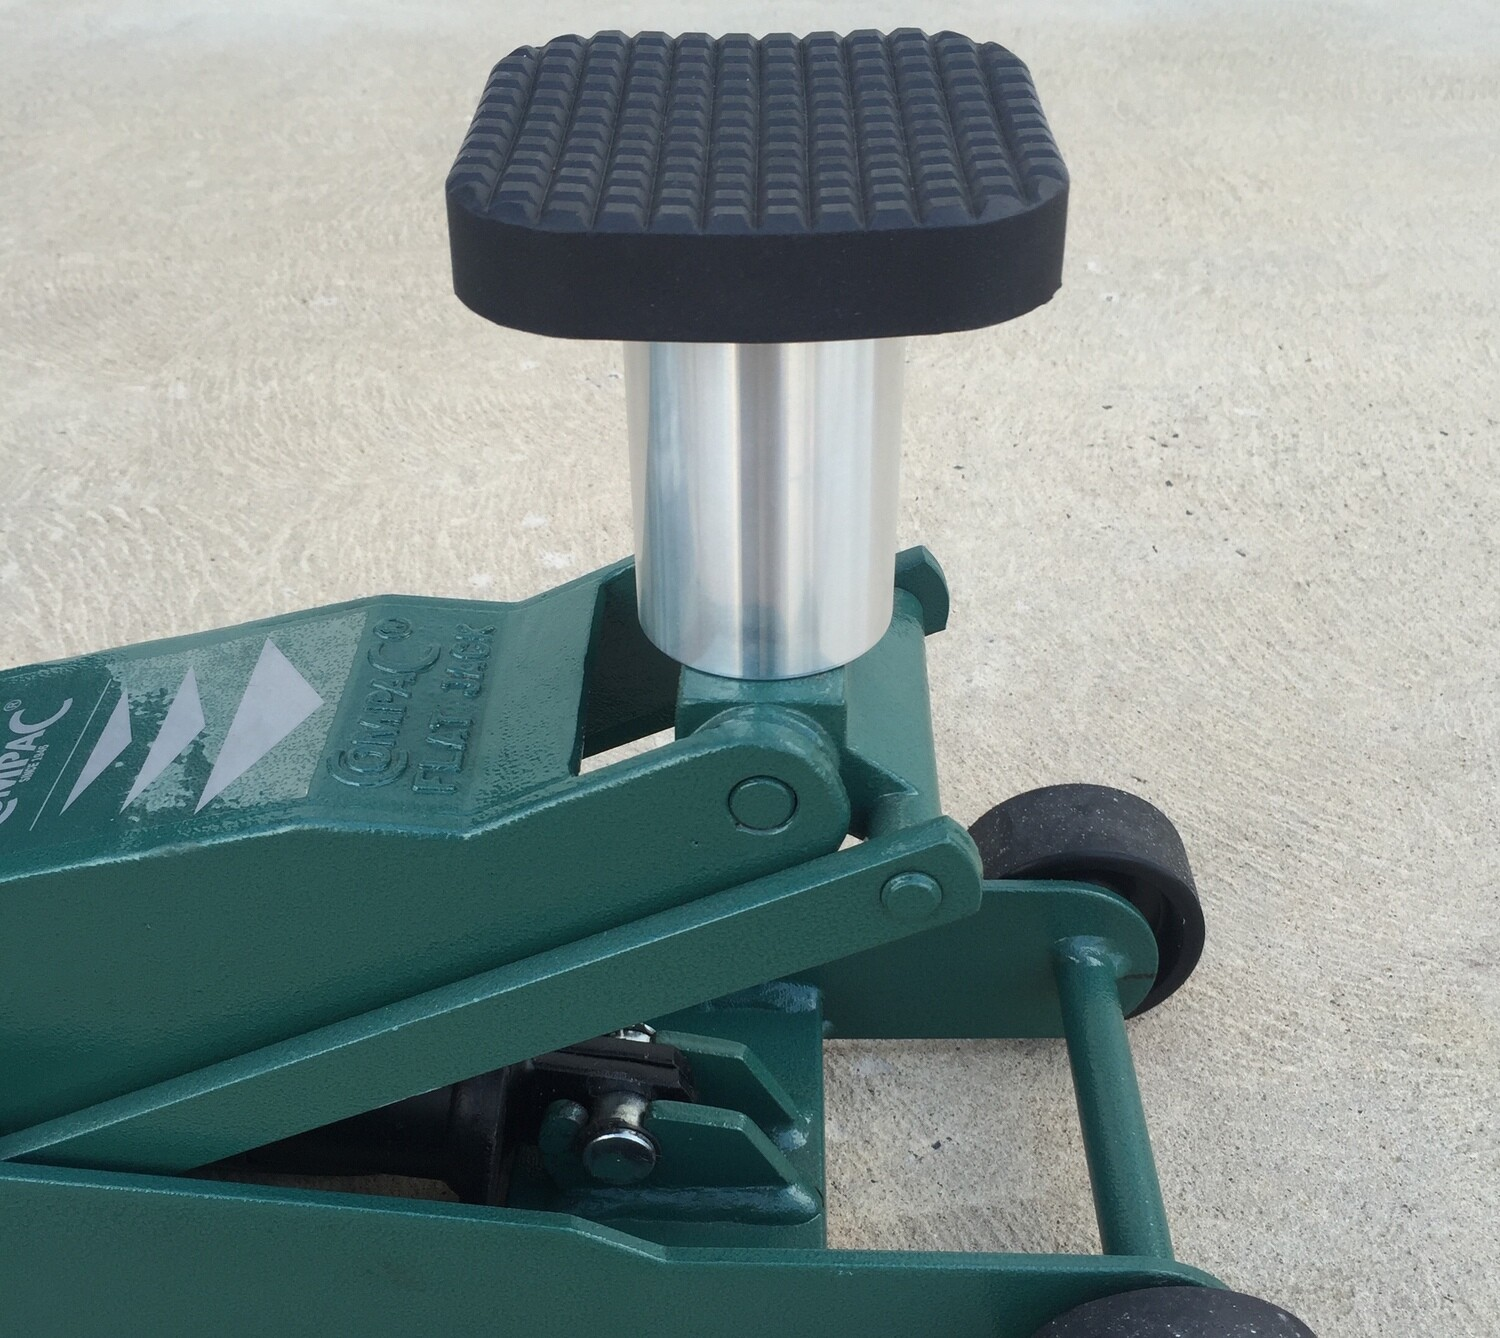 100mm Tall Floor Jack Extender